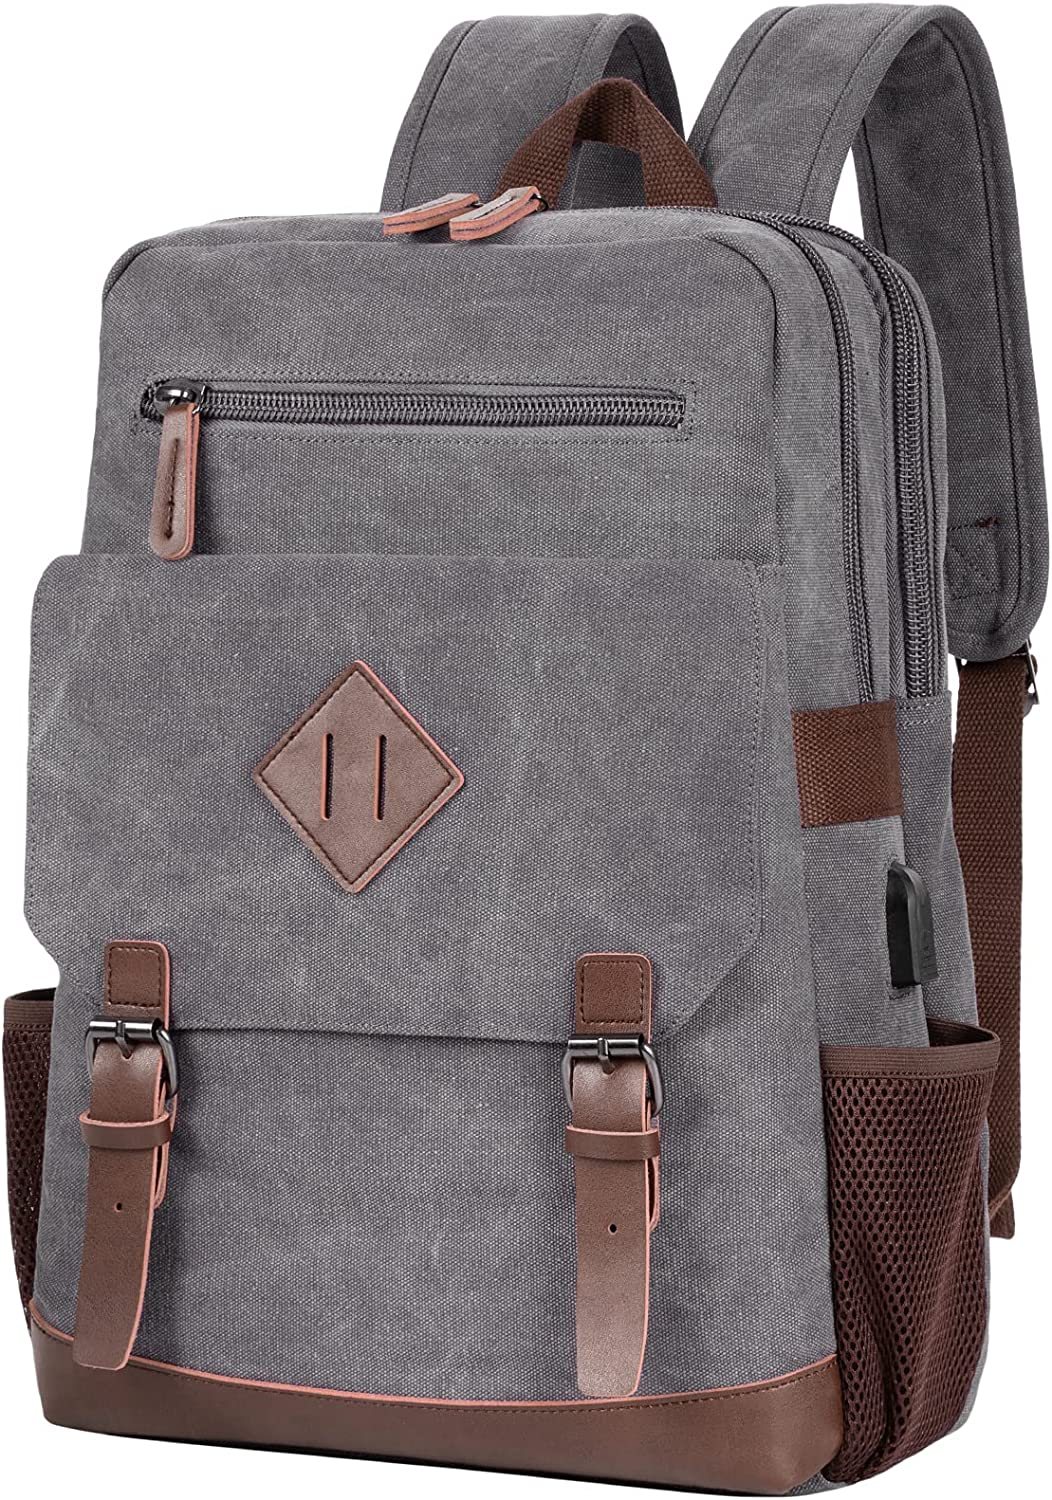 Modoker Vintage Backpack for Men Women, Canvas Bookpack Fits Most 15.6 Inches Computer and Tablets, Rucksack Backpack with USB Charging Port, Grey